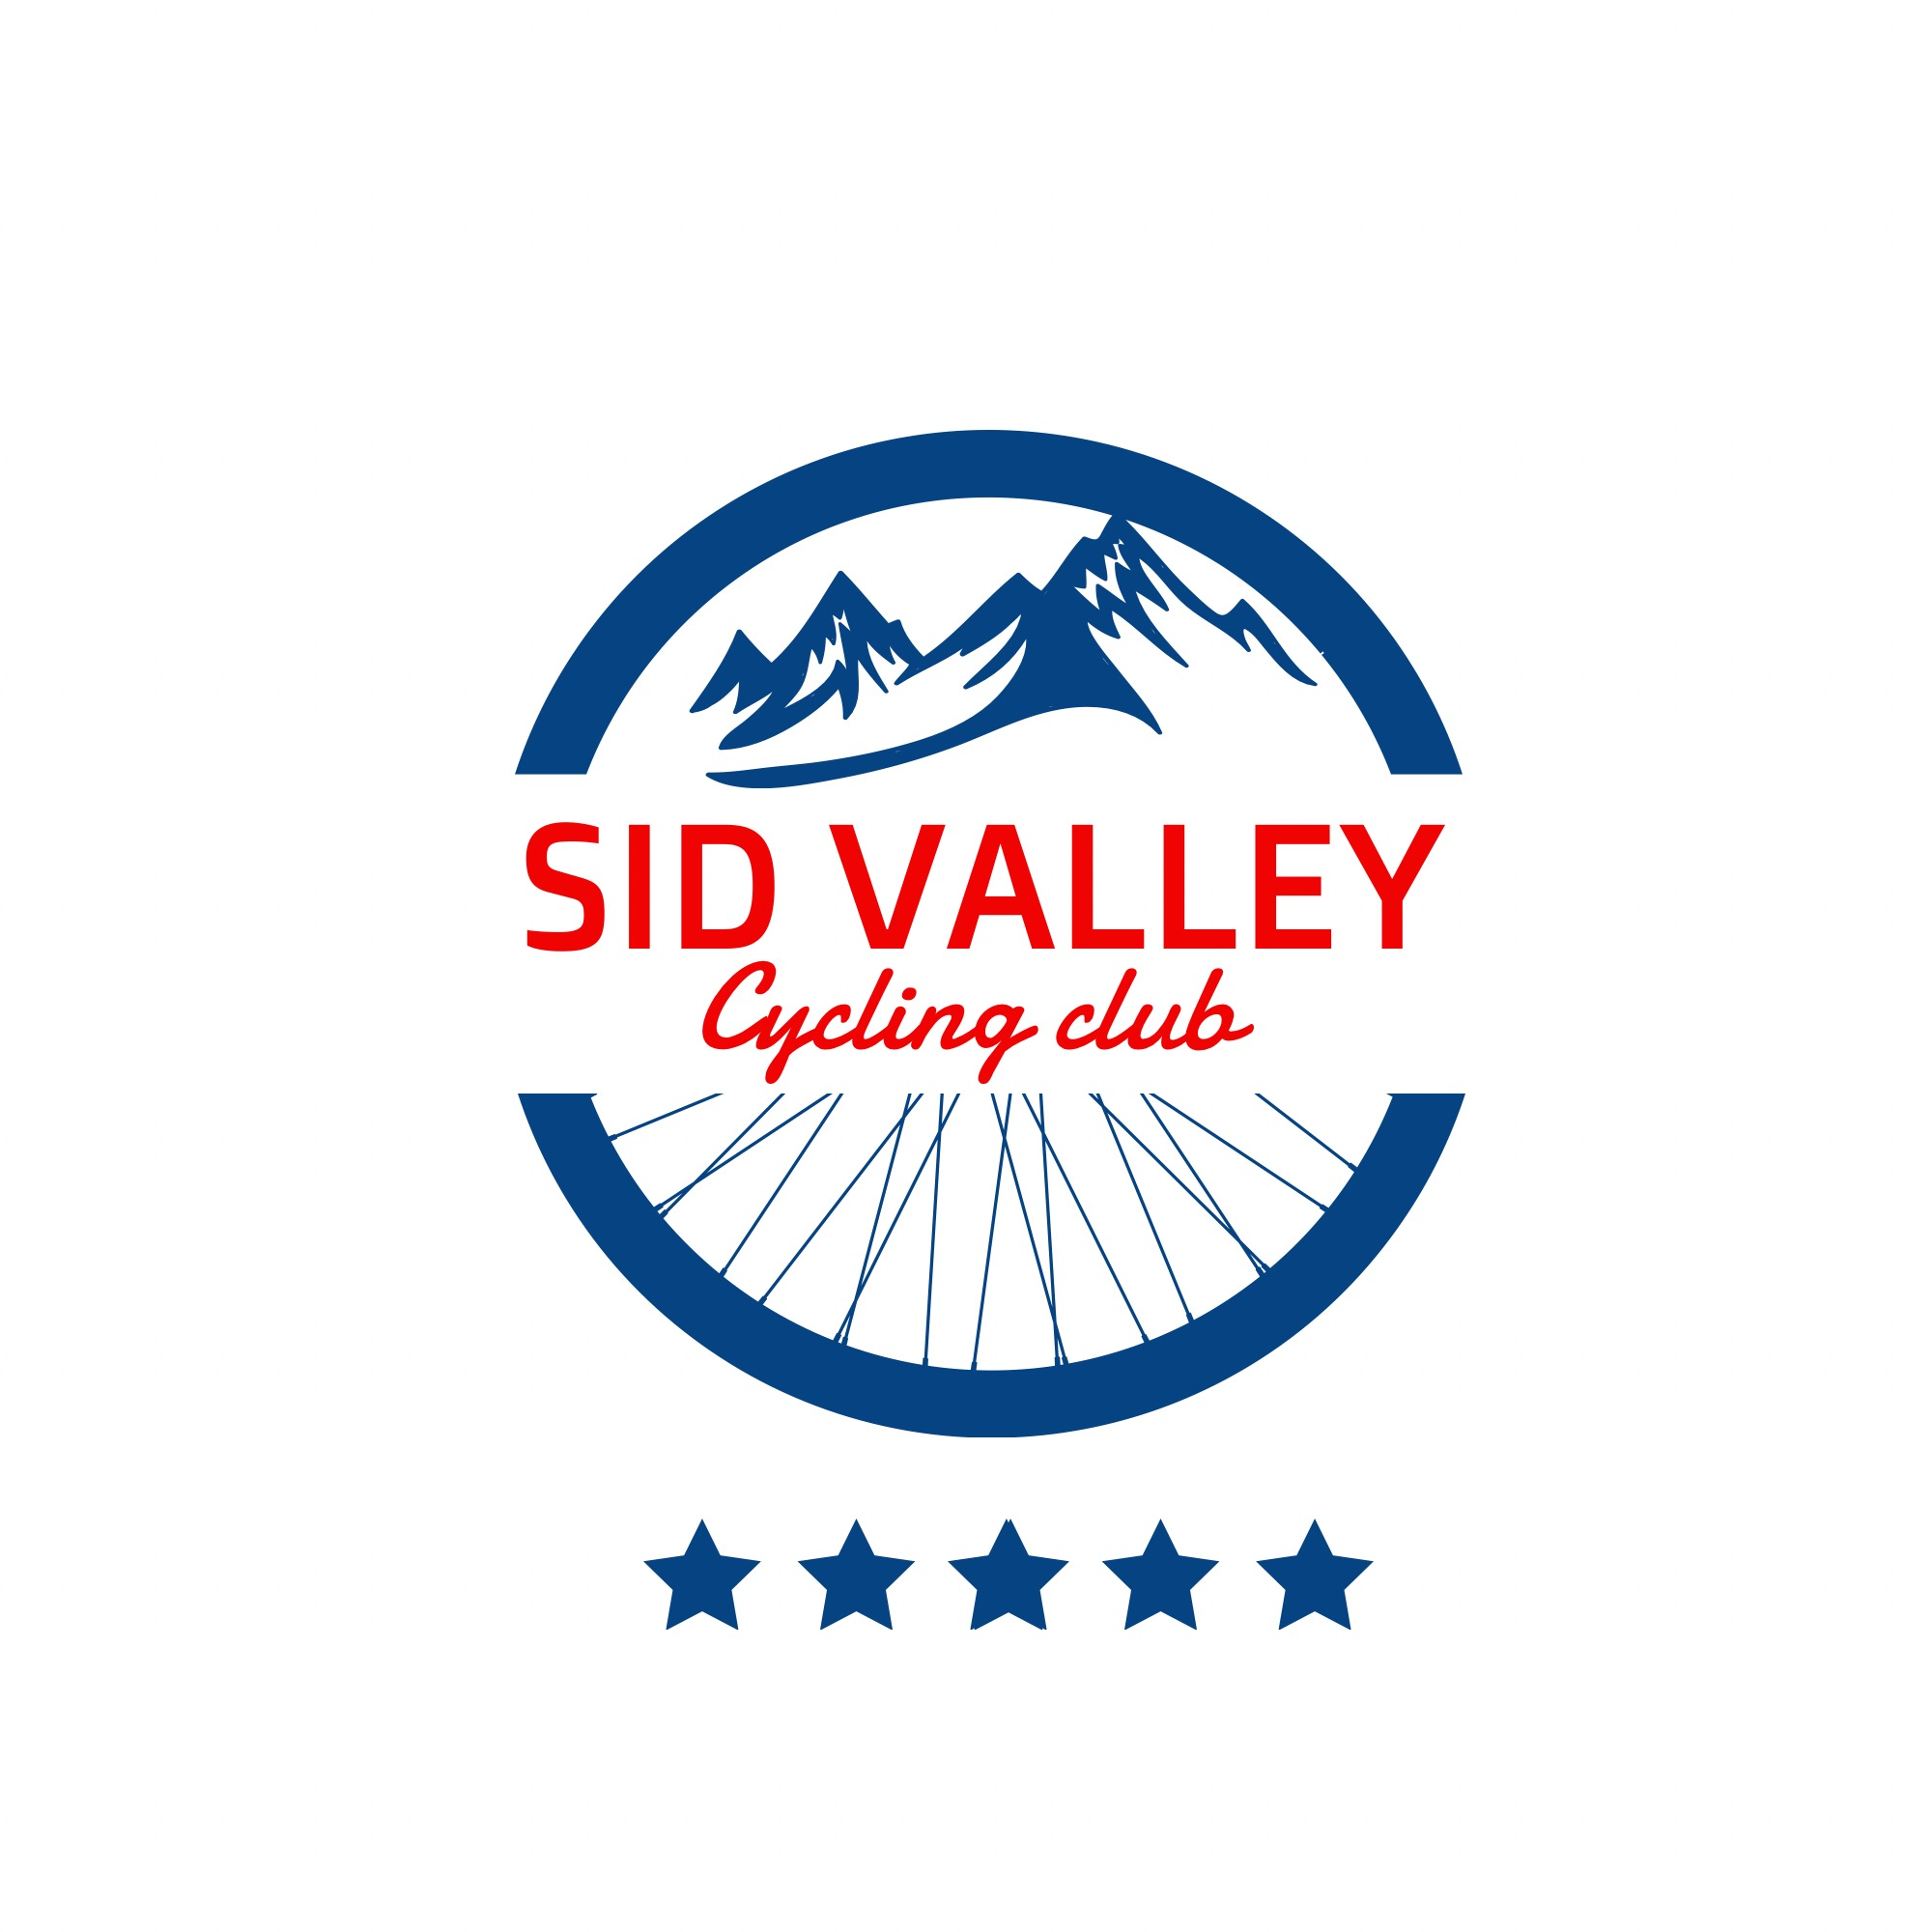 Sid Valley Cycling Club